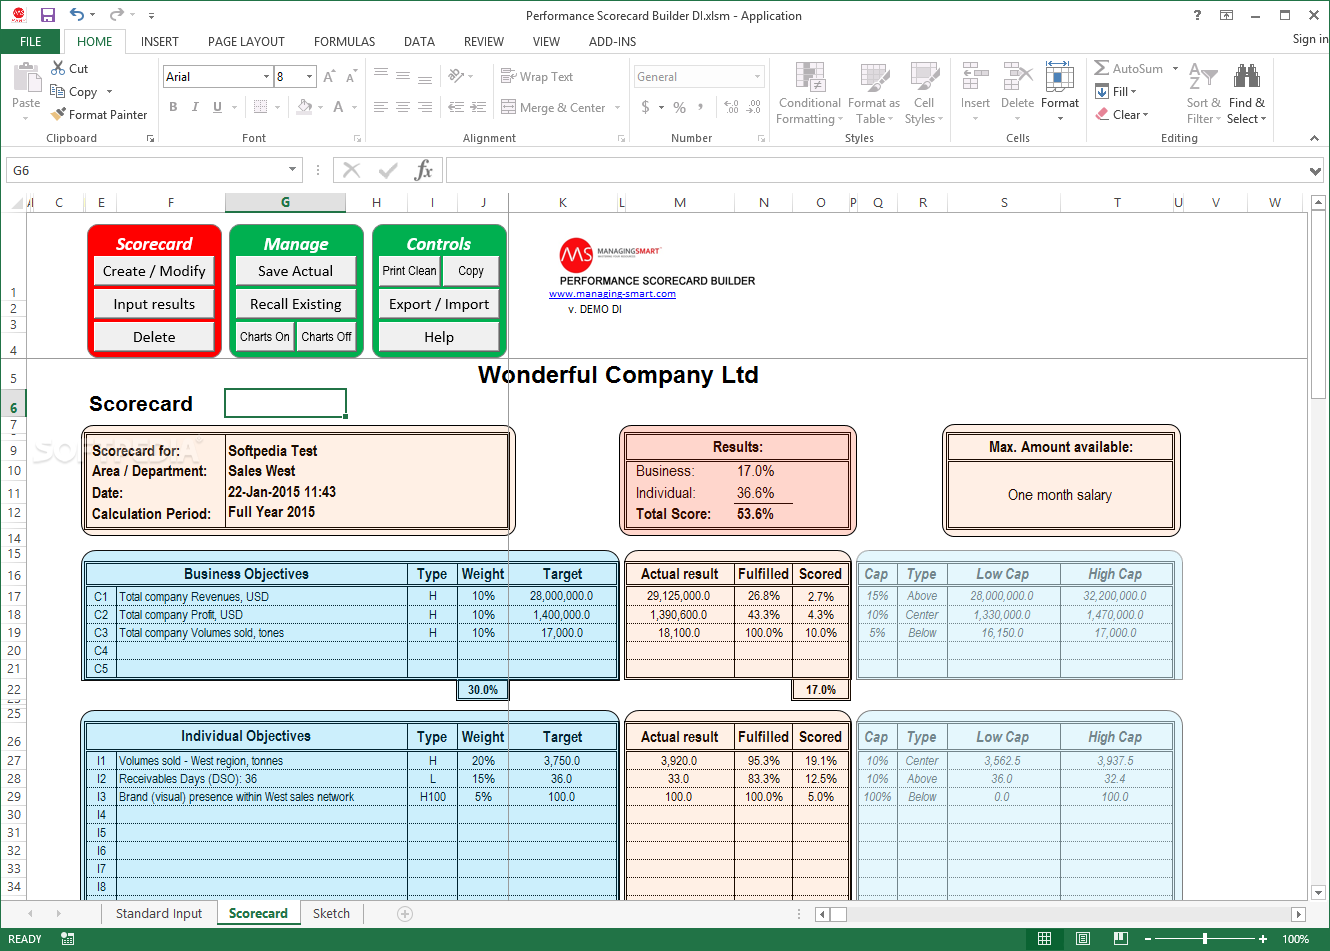 Performance Scorecard Builder Is A Microsoft Excel Tool That Allows You To